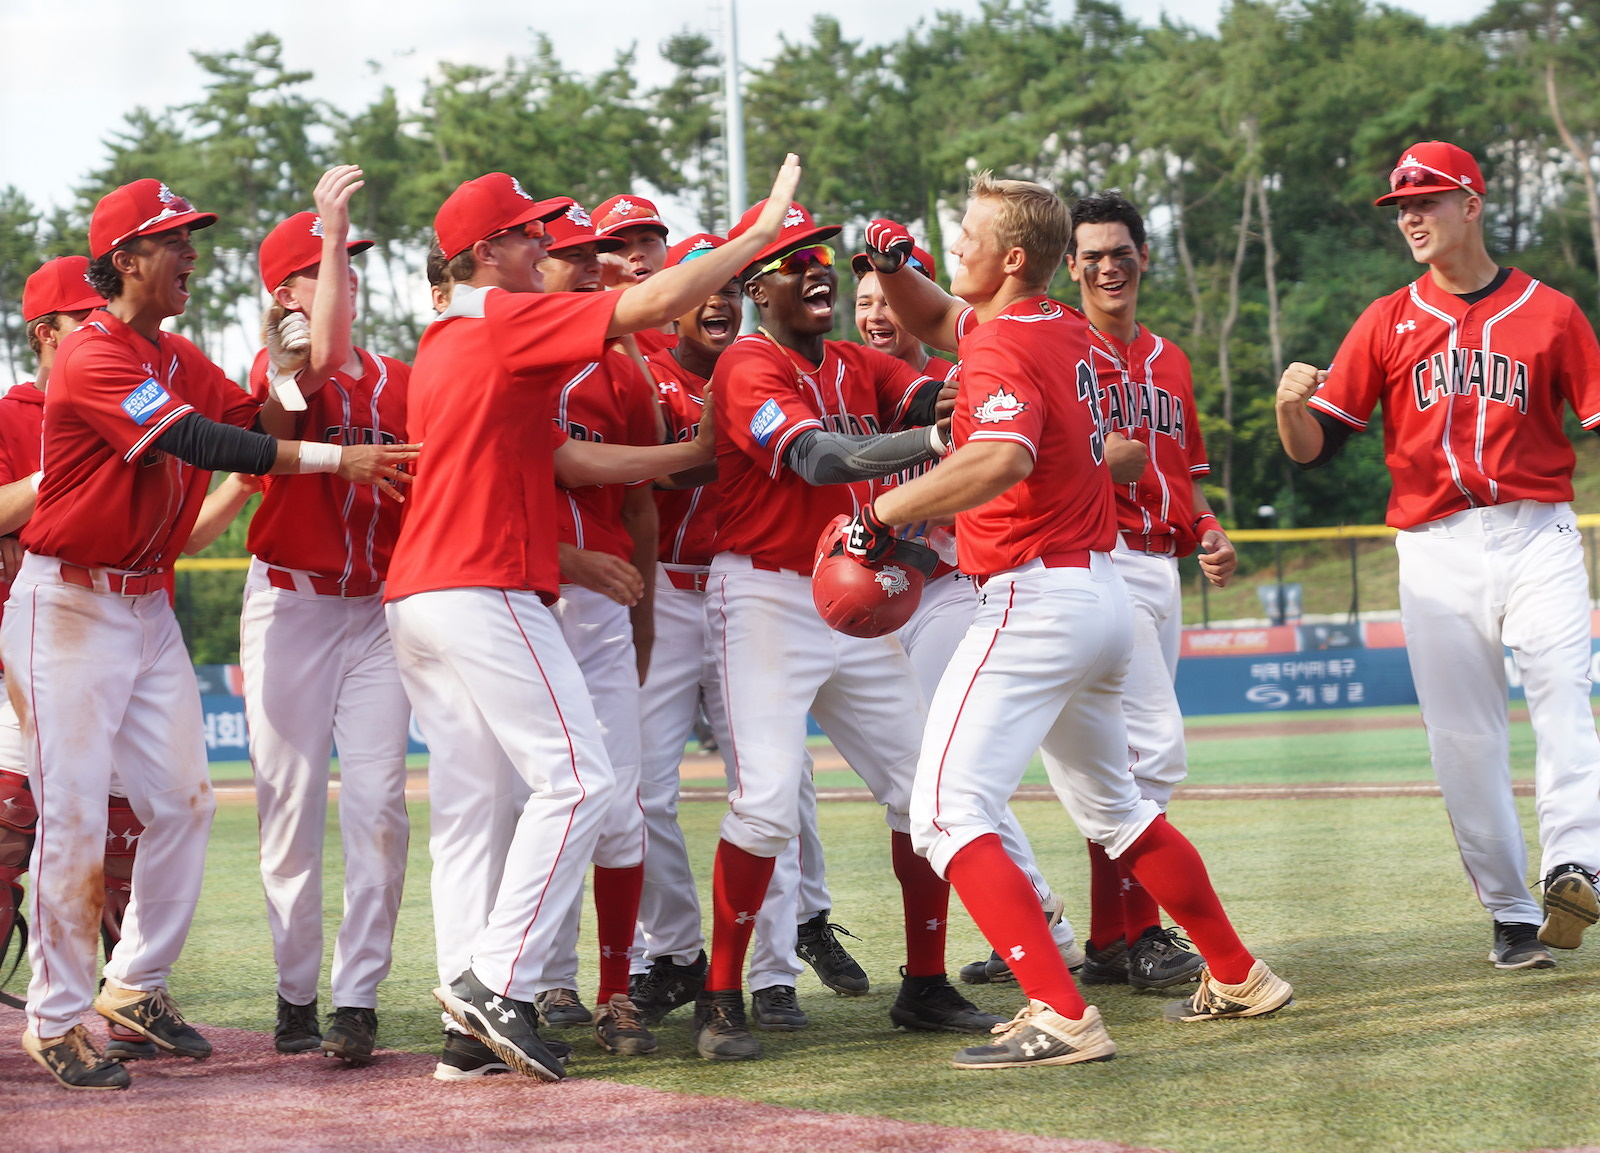 U-18 Baseball World Cup: Canada powers past Netherlands